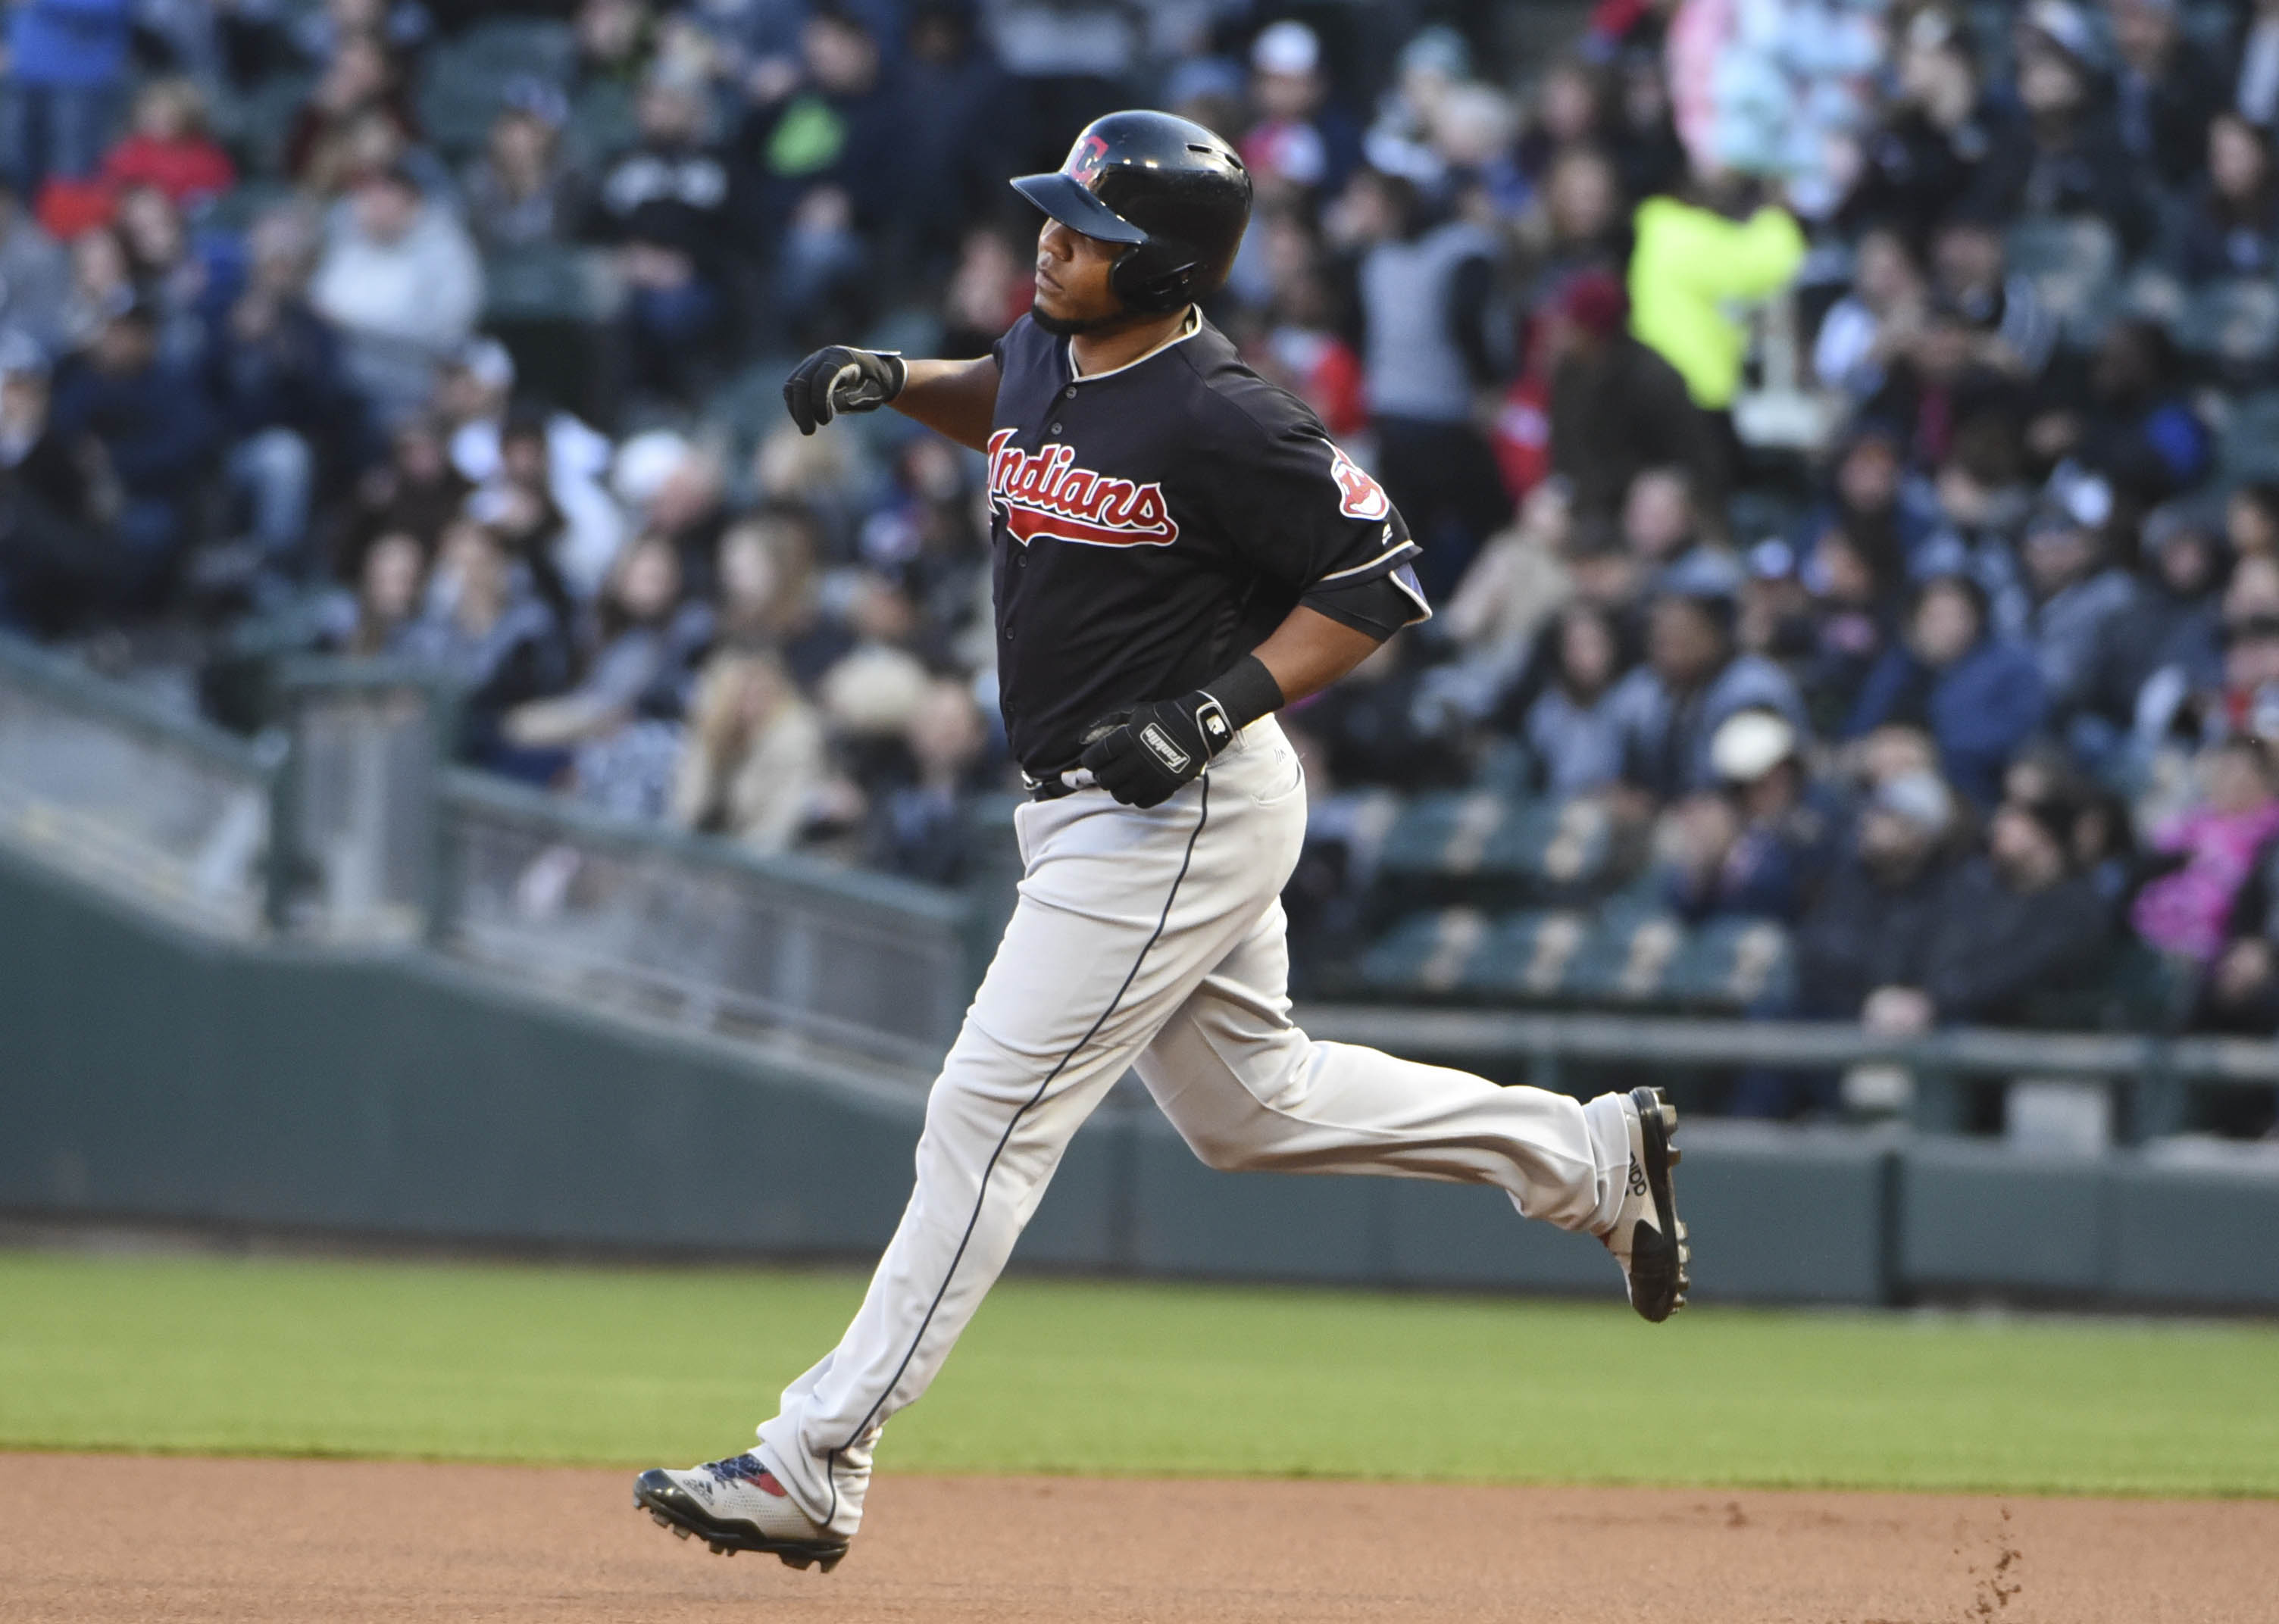 10025794-mlb-cleveland-indians-at-chicago-white-sox